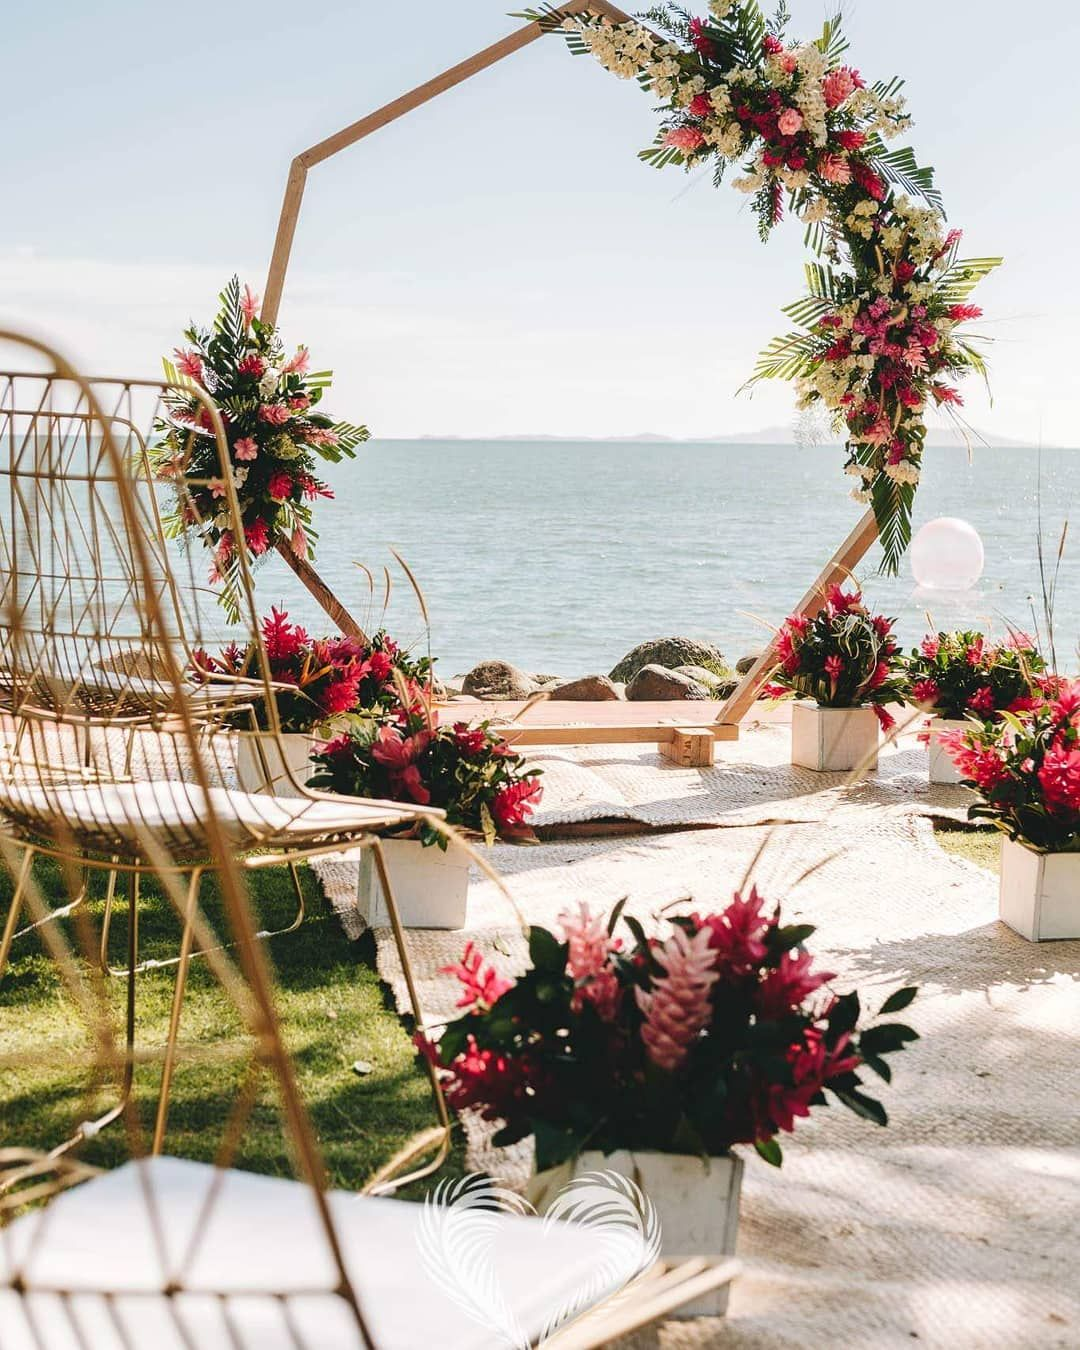 Belongil Beach Wedding Ceremony: New Wedding Ceremony Options At @fiji_weddings Tropical